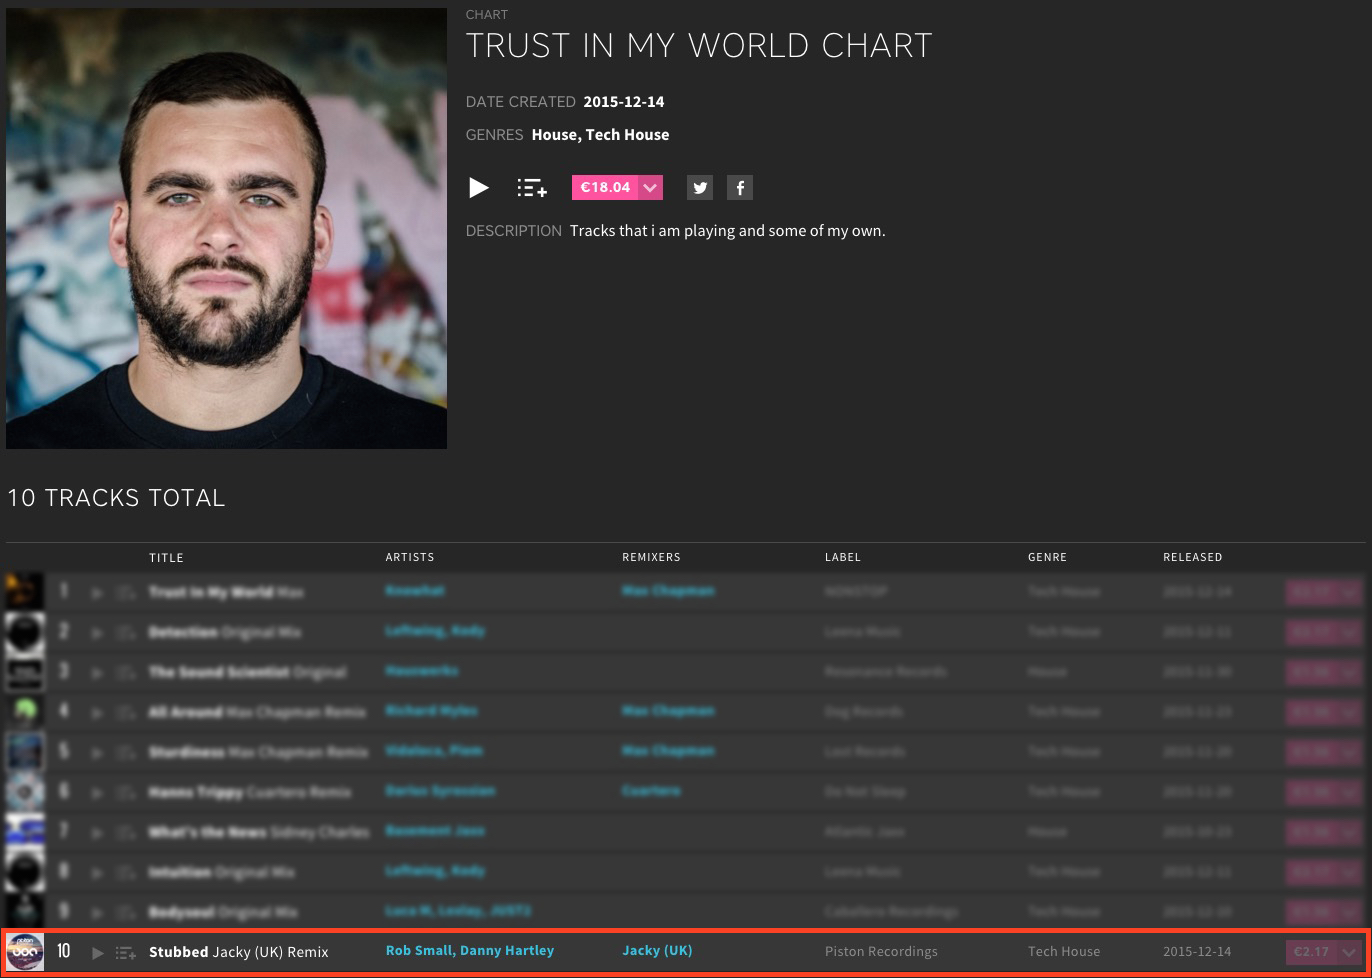 ROB SMALL & DANNY HARTLEY – STUBBED (JACKY (UK) REMIX) CHARTED BY MAX CHAPMAN